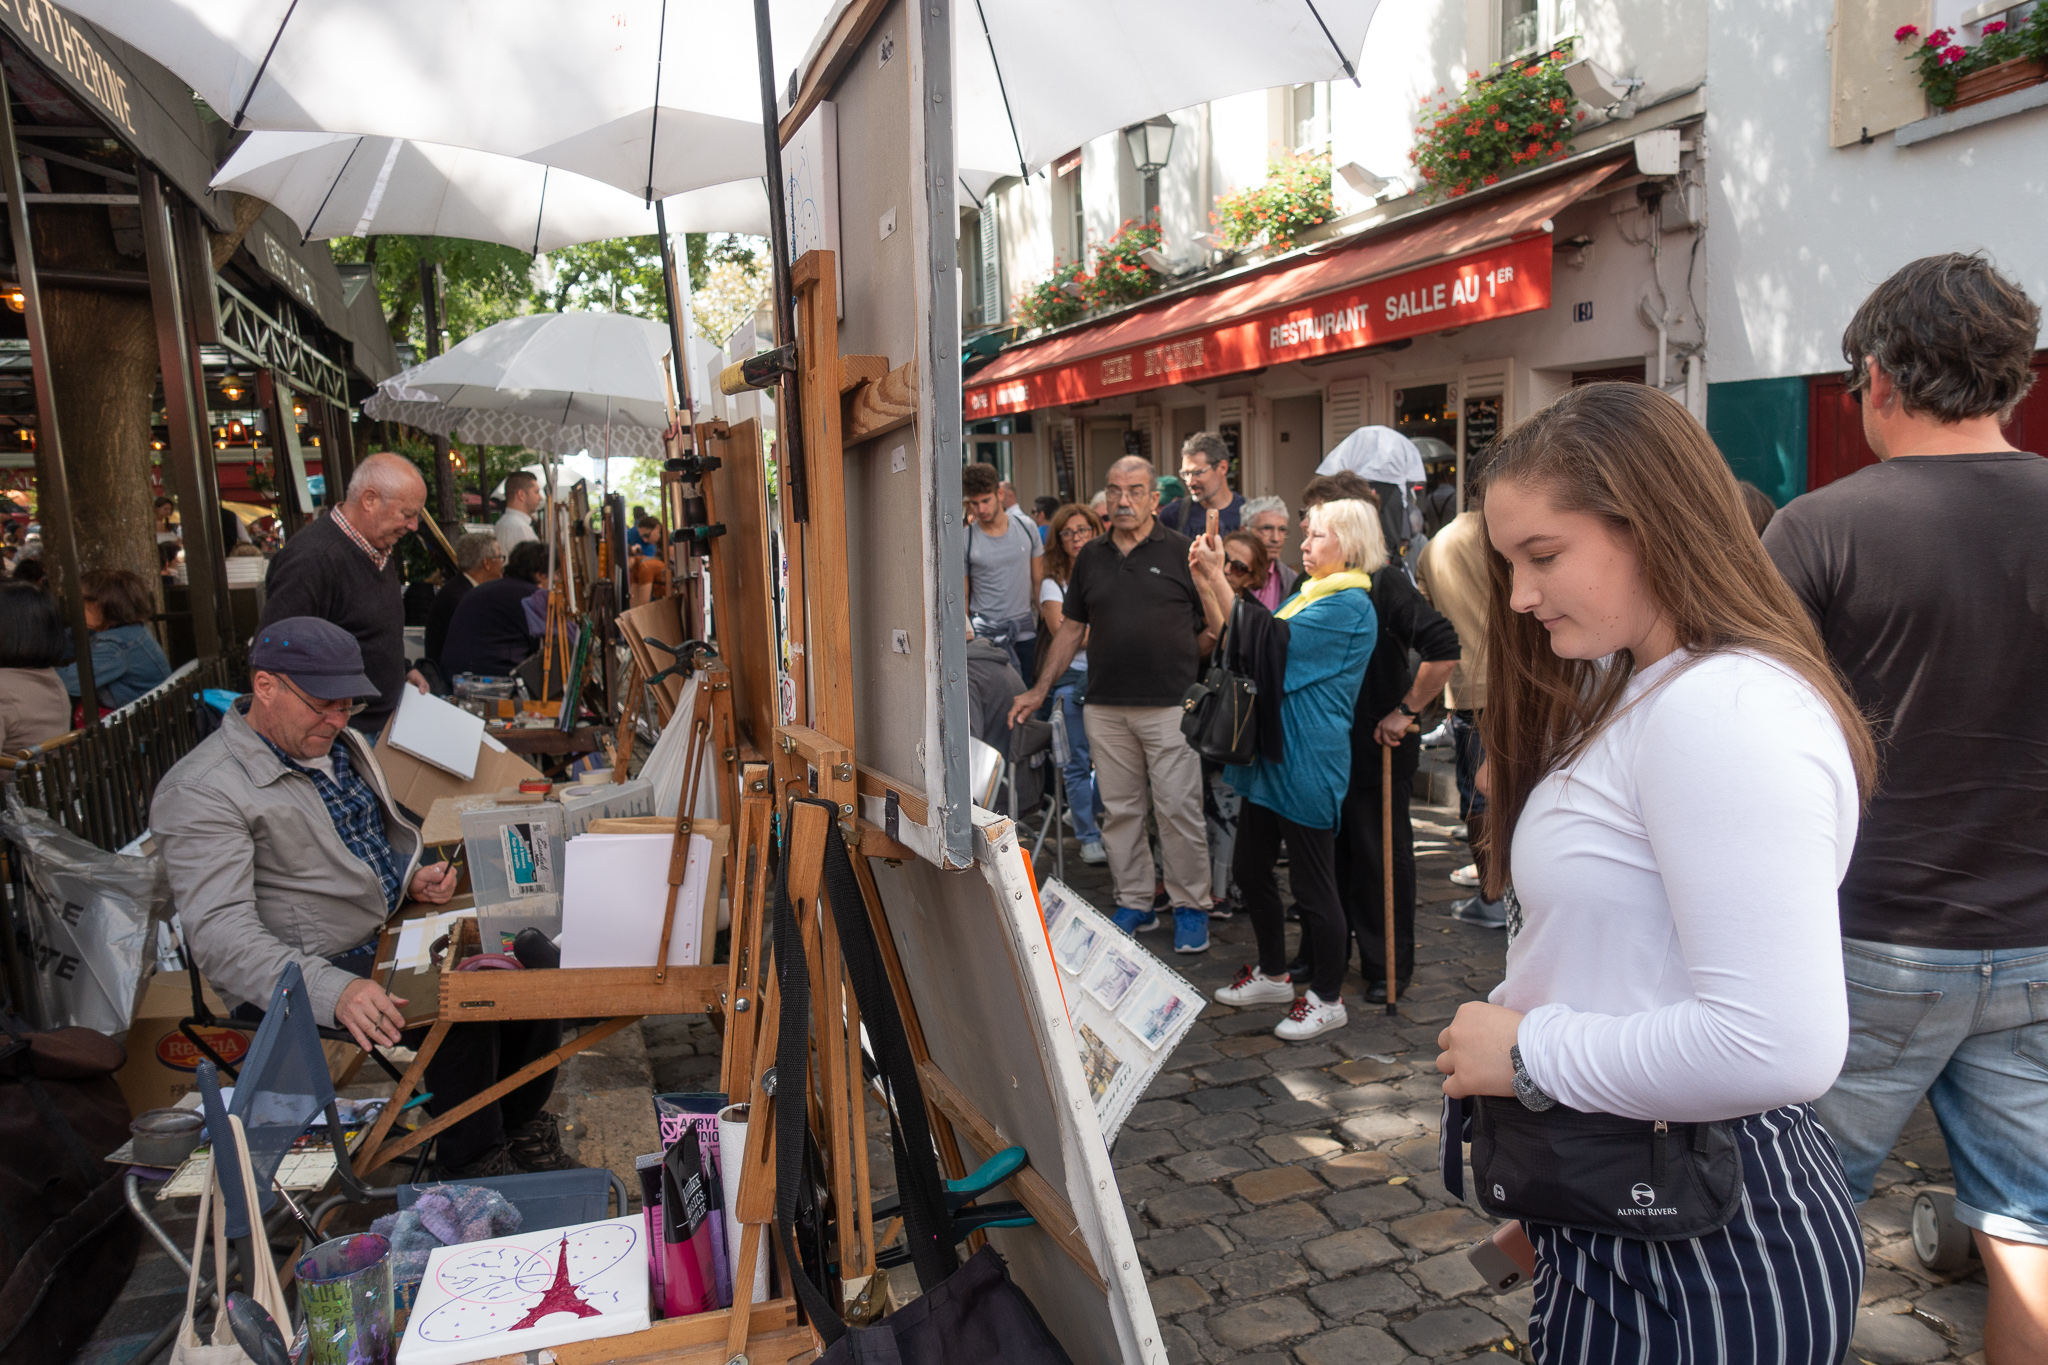 Montmartre art walk